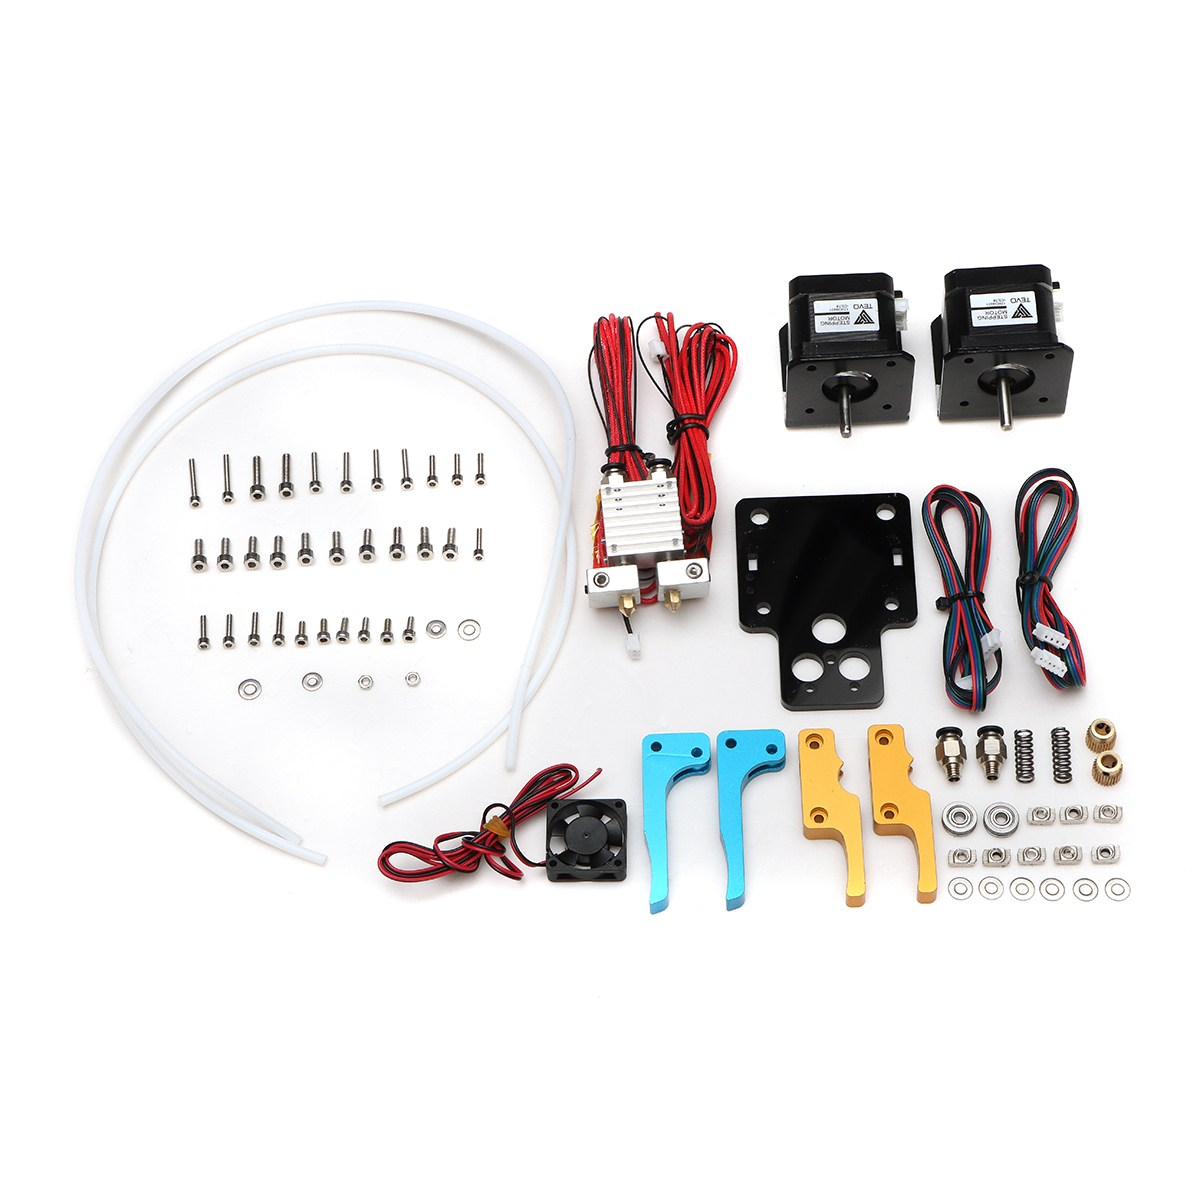 New Arrival TEVO Tarantula Dual Extruder Upgrade Kits For 3D Printer With Cooling Fan and Nema17 Stepper Motor 2017 newest tevo tarantula 3d printer impresora 3d diy impressora 3d with filament micro sd card titan extruder i3 3d printer